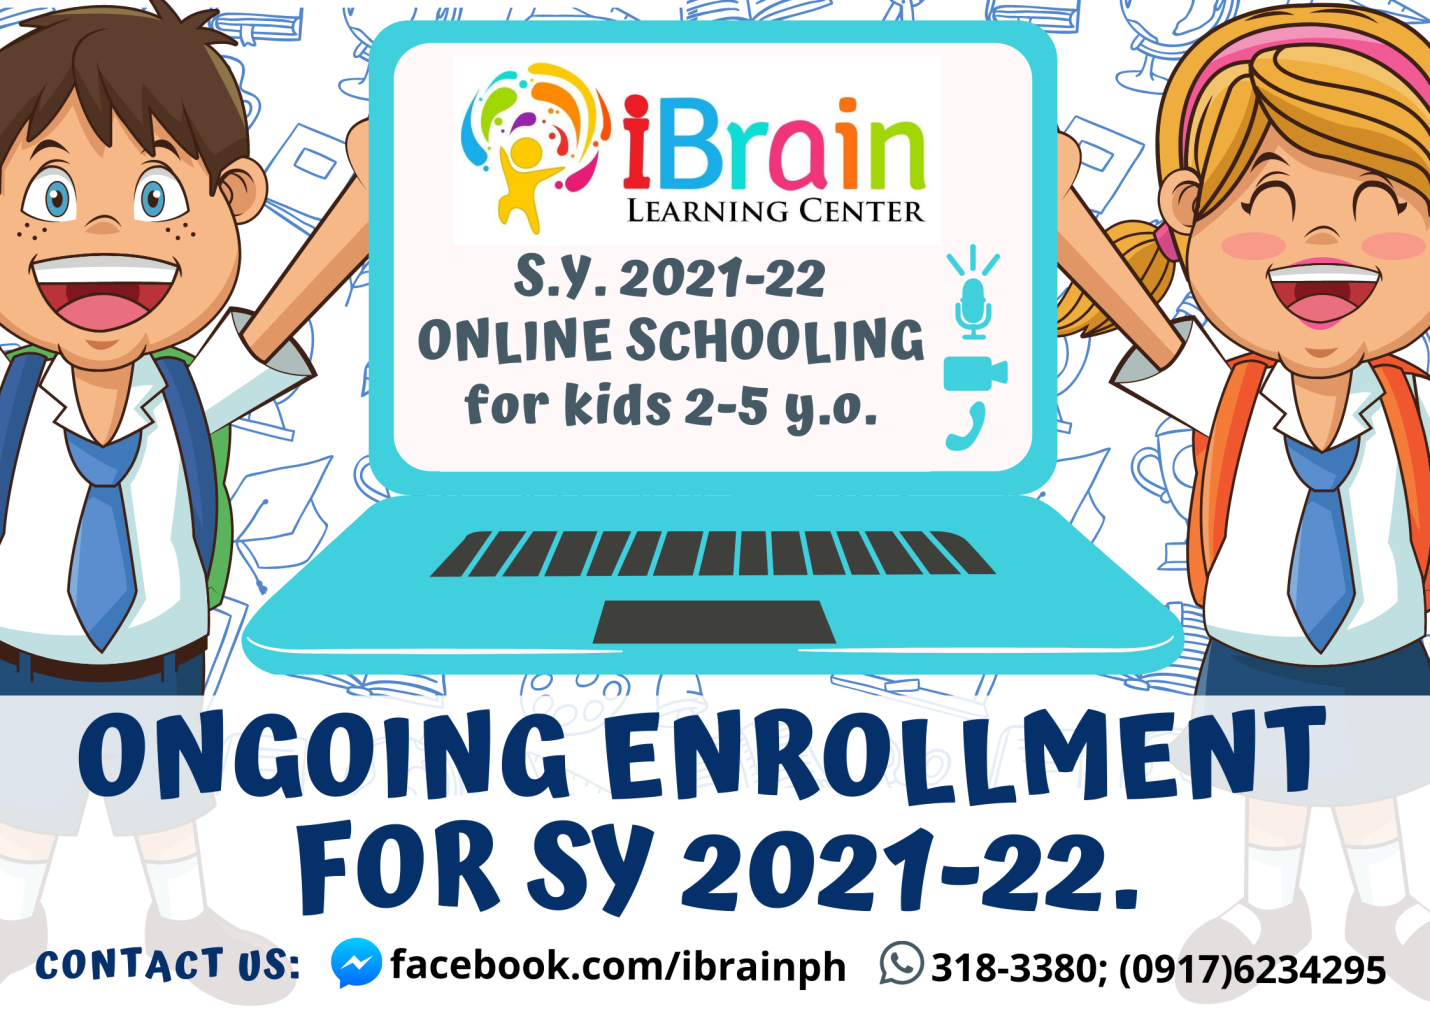 C:\Users\GCPI-ROBBY\Desktop\IBRAIN\new flyer for SY 2021-22.png